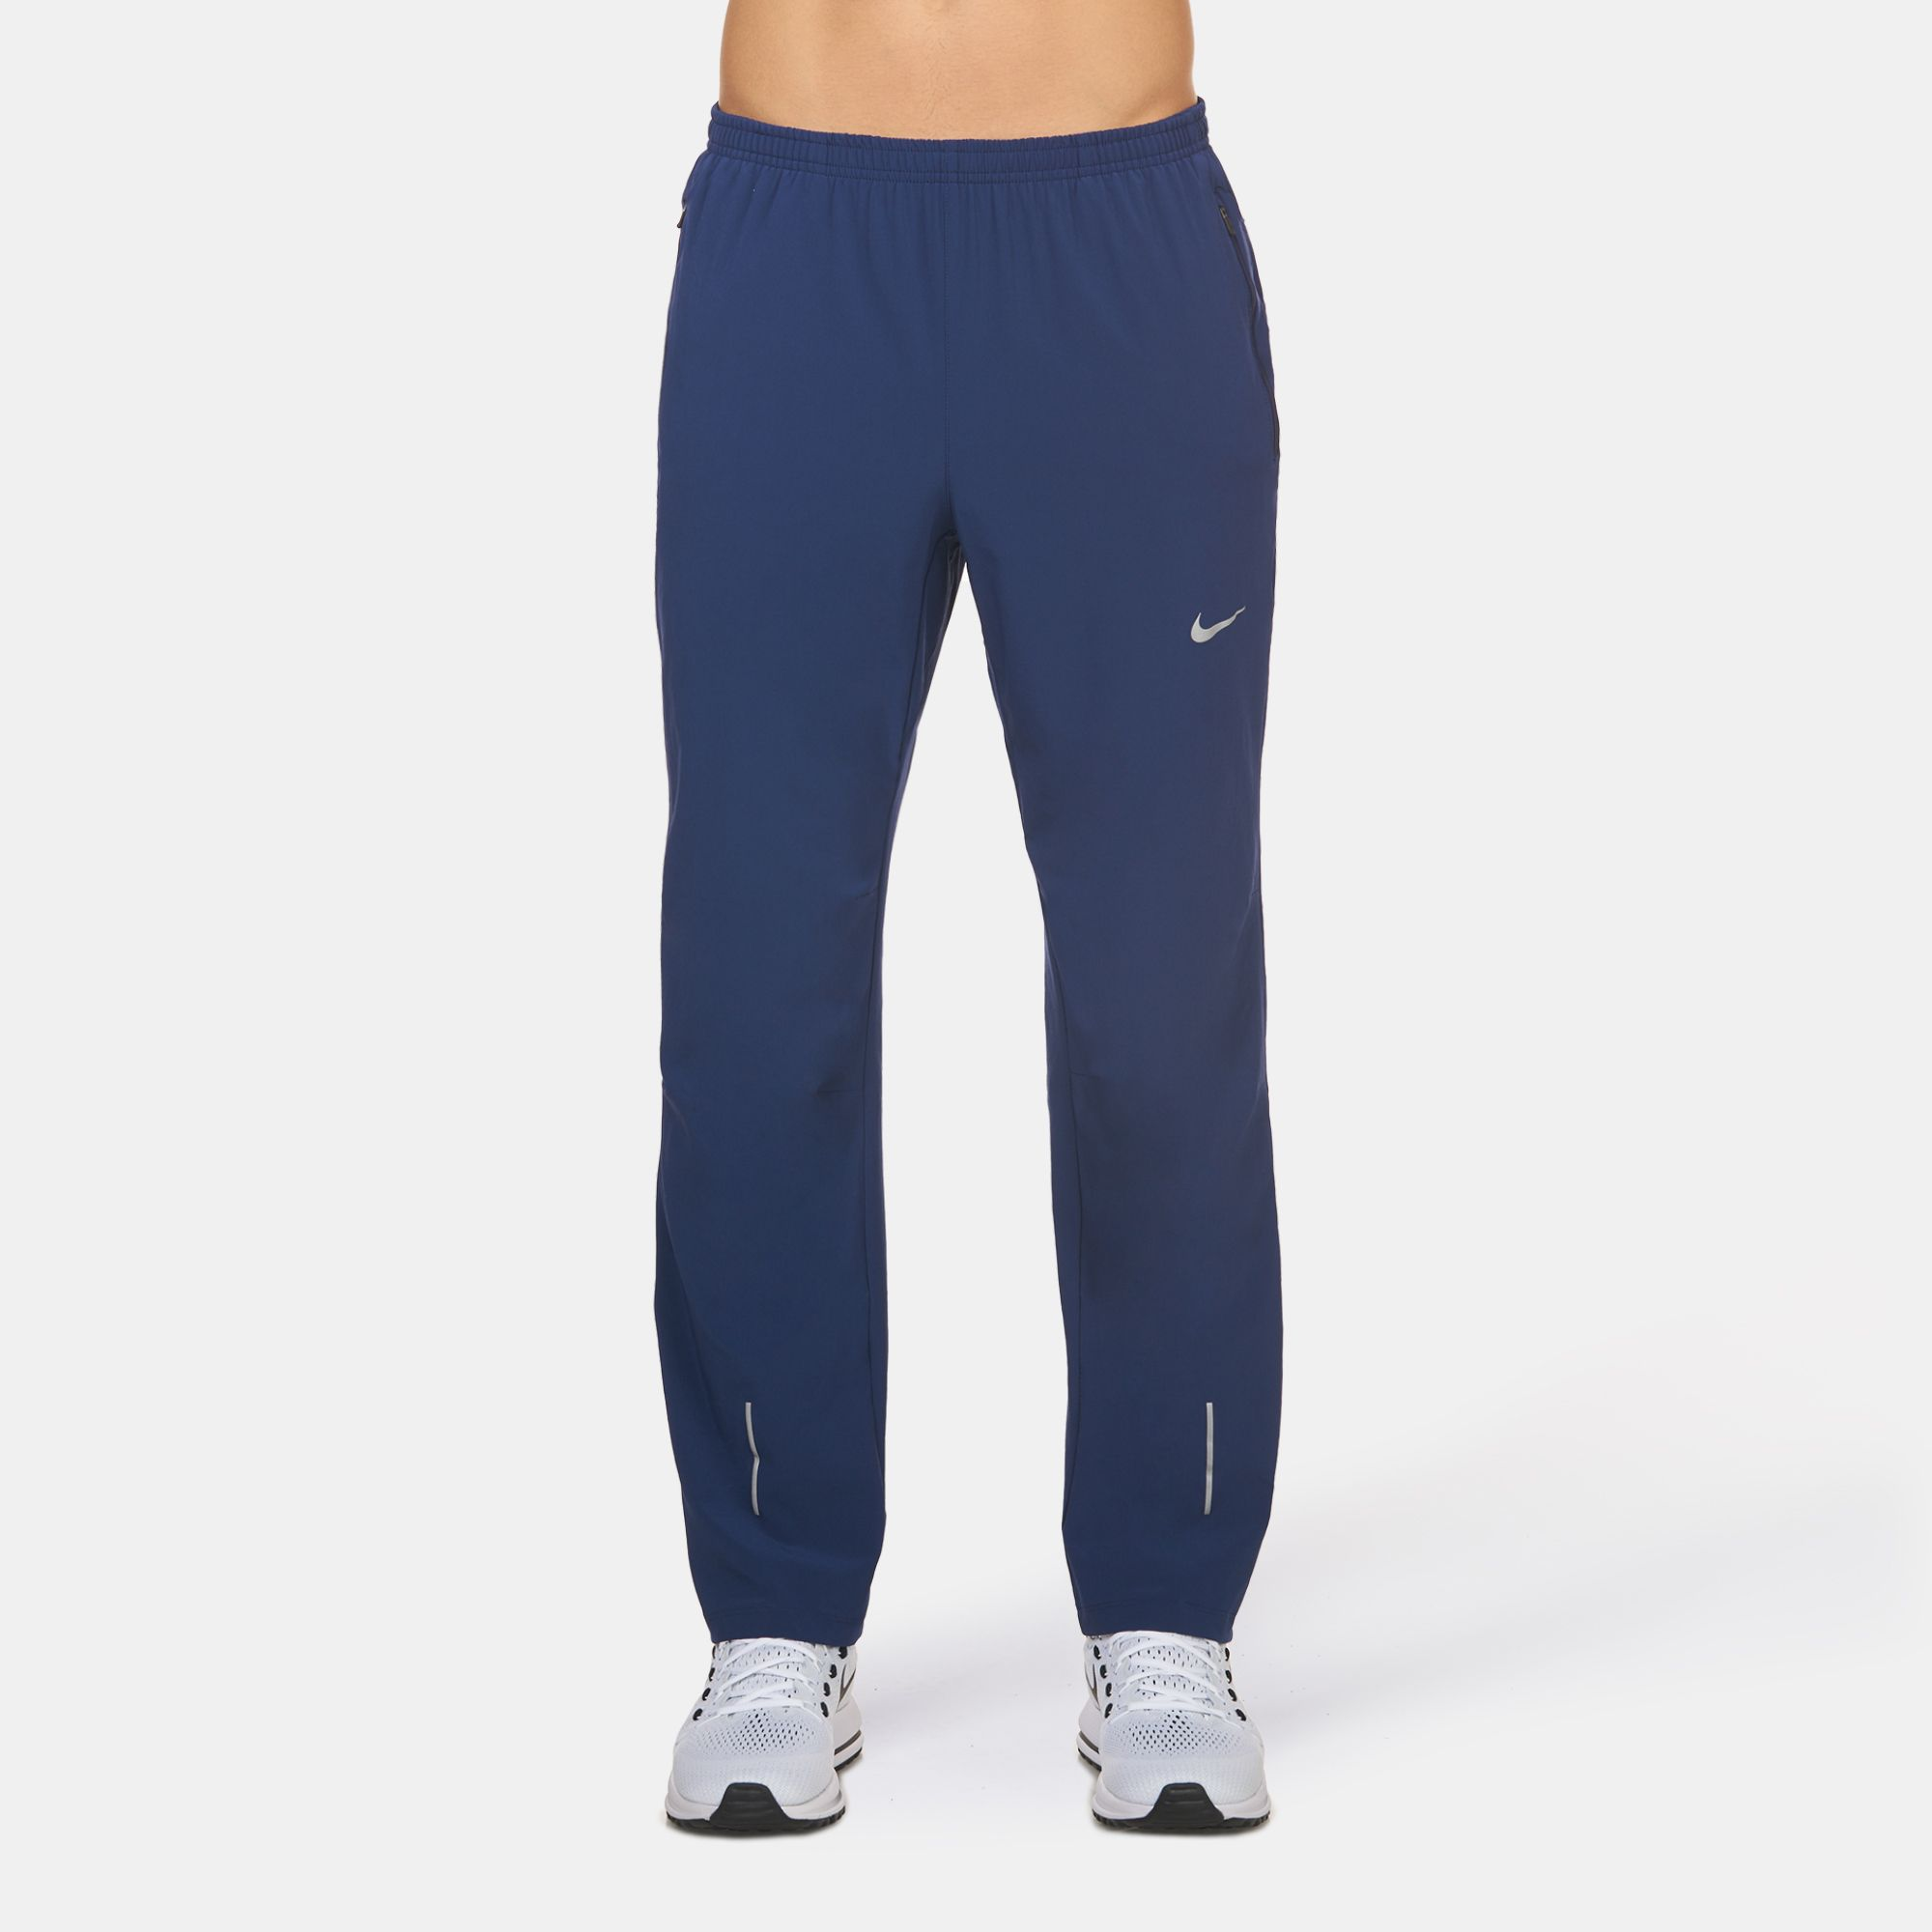 5f0f5c46e Shop Blue Nike Dri-FIT Stretch Woven Running Pant for Mens by Nike | SSS